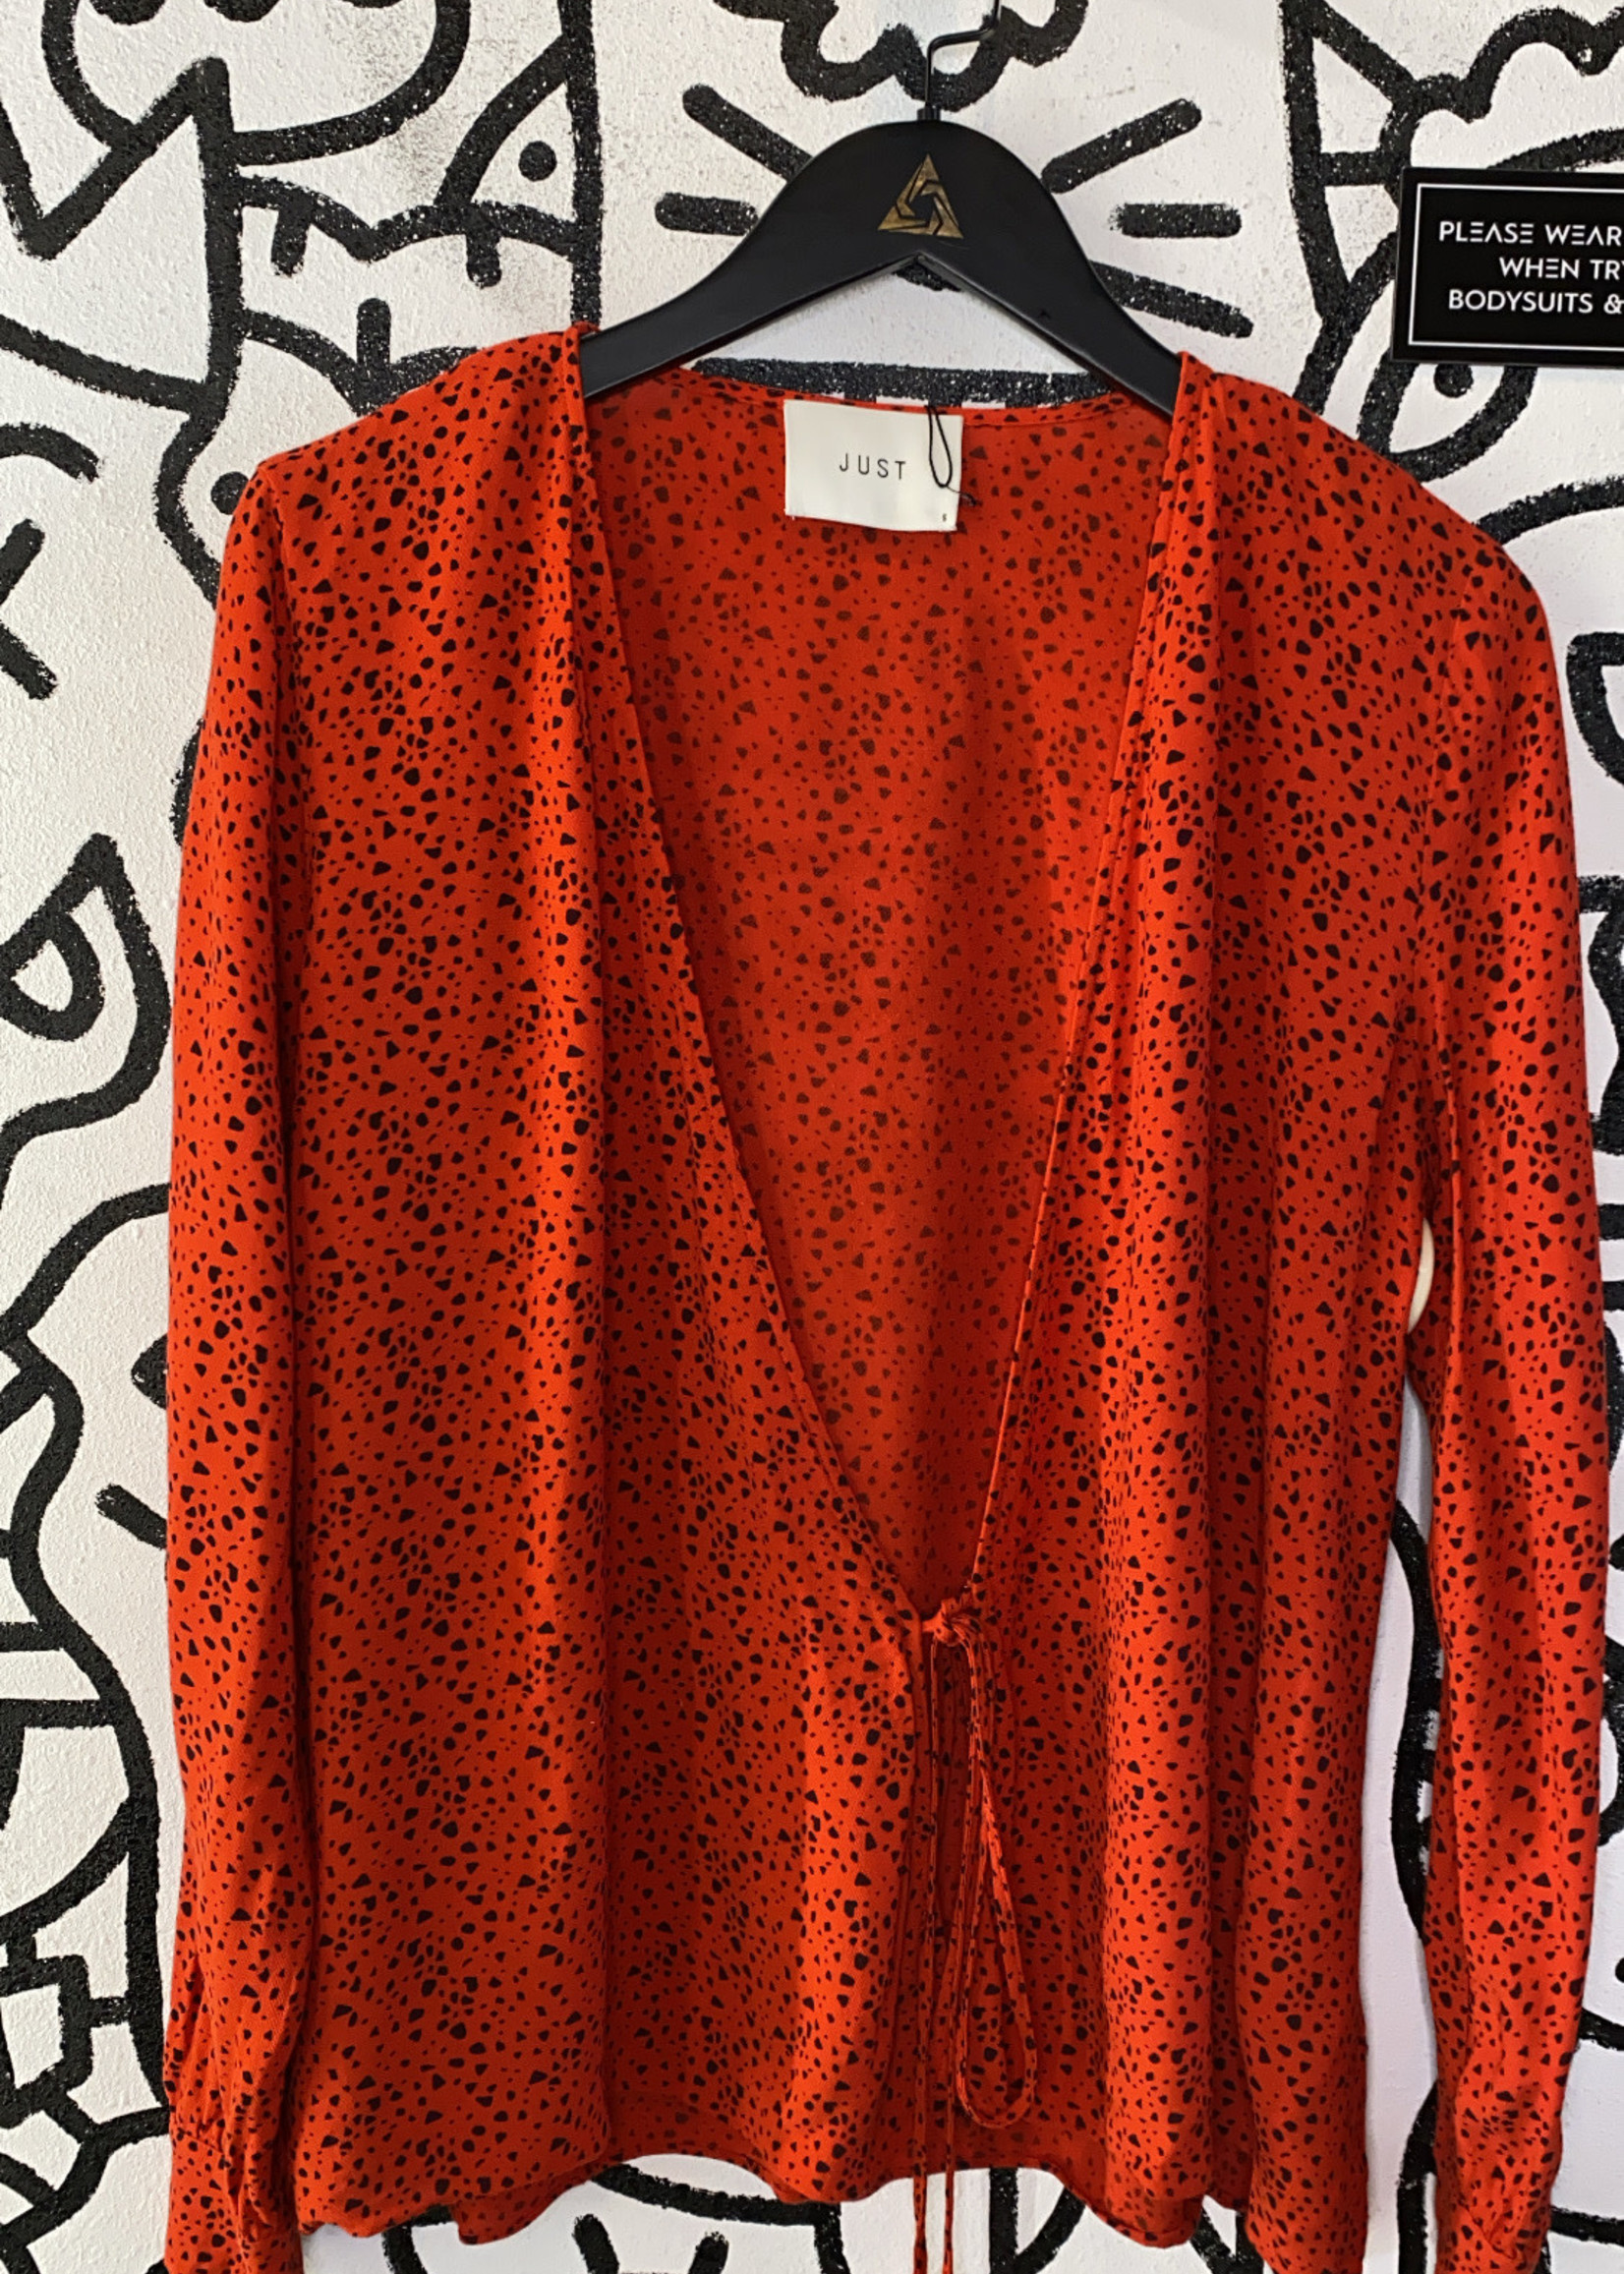 Just Red Spotted Long Sleeve Tie Blouse S